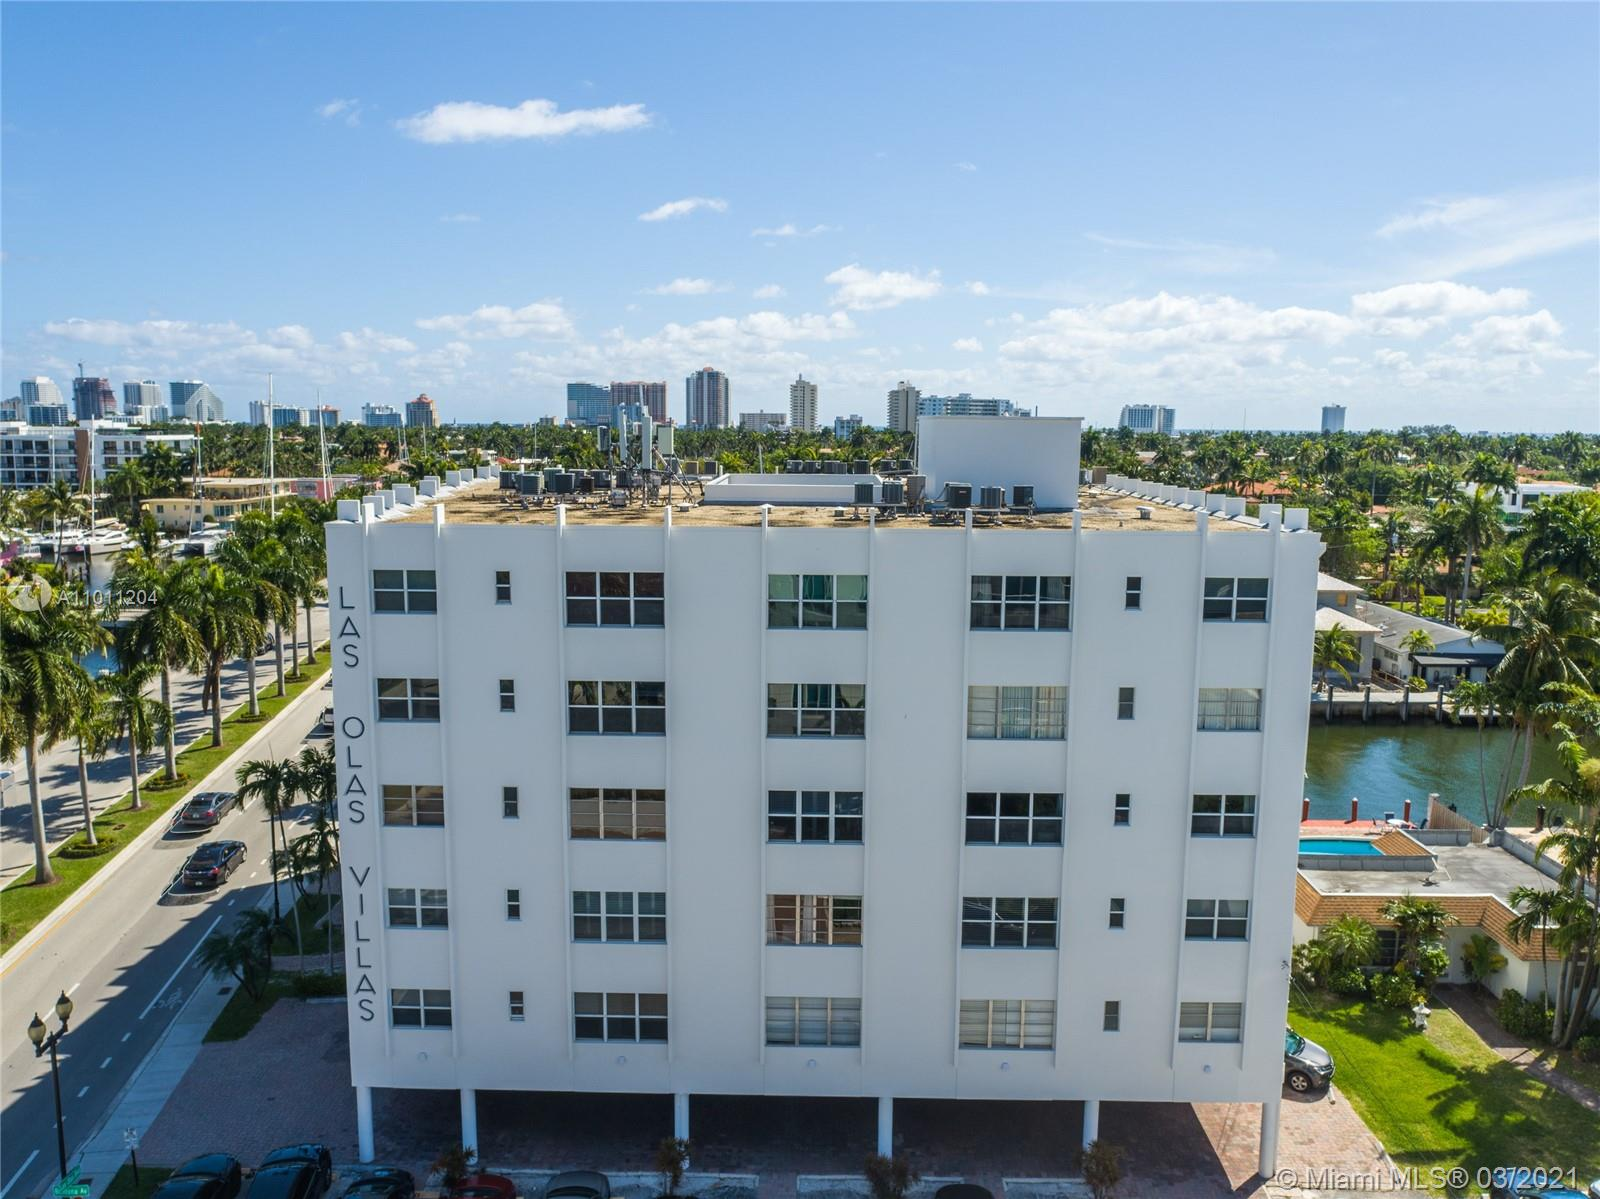 Great location! Walk to the beach for some sun and then stroll down Las Olas at night for food and fun! This 1/1 is nicely updated and in a rarely available, well-managed, low fee complex of just 40 units. There is a pool, grilling area, bike storage area, and dock area for resident's use. Unit comes with 1 assigned parking spot.